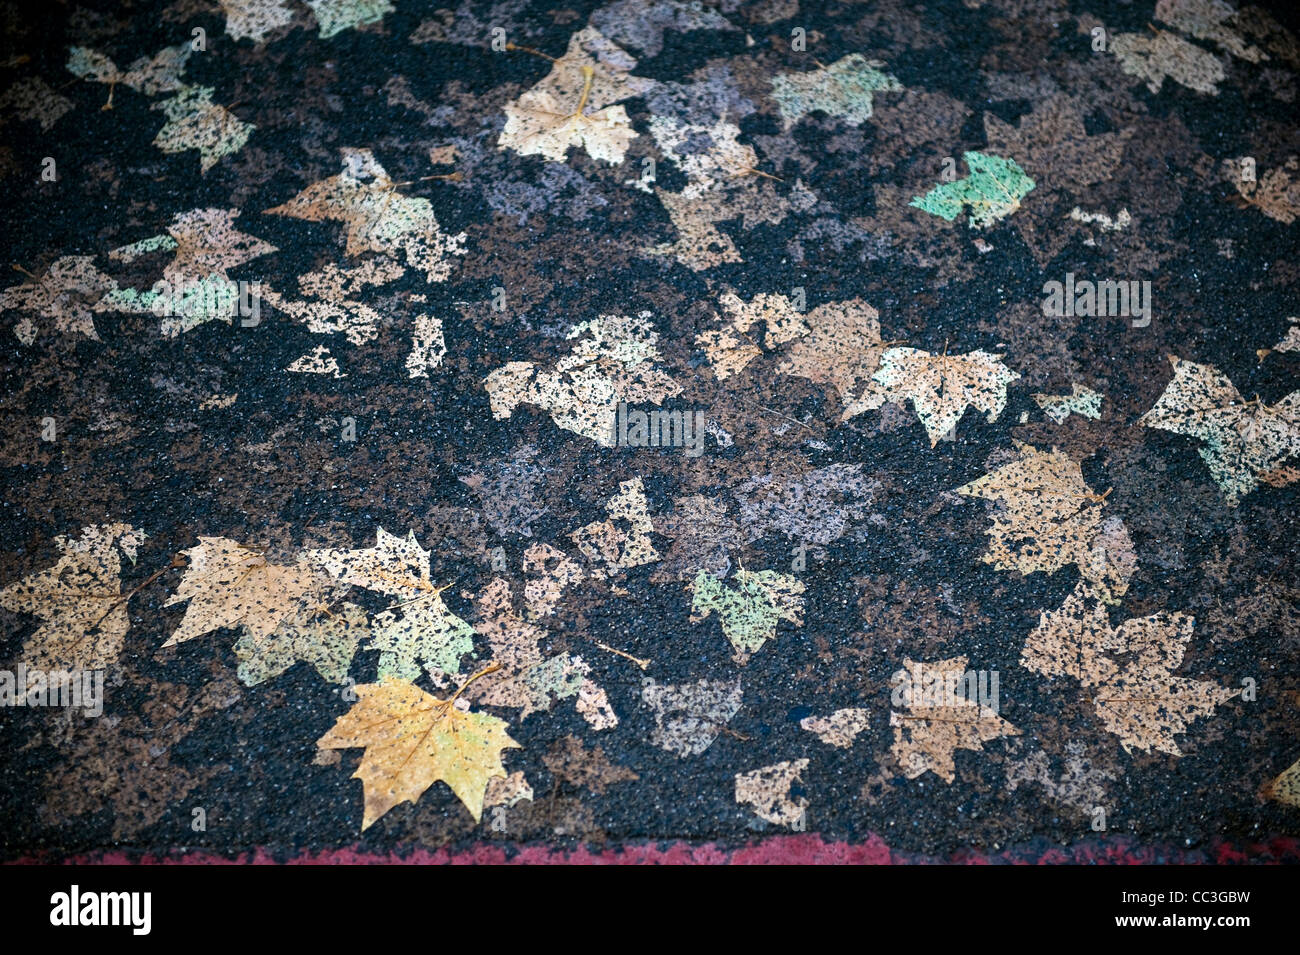 Autumn leaves pressed into tarmac by vehicles creating abstract patterns - Stock Image